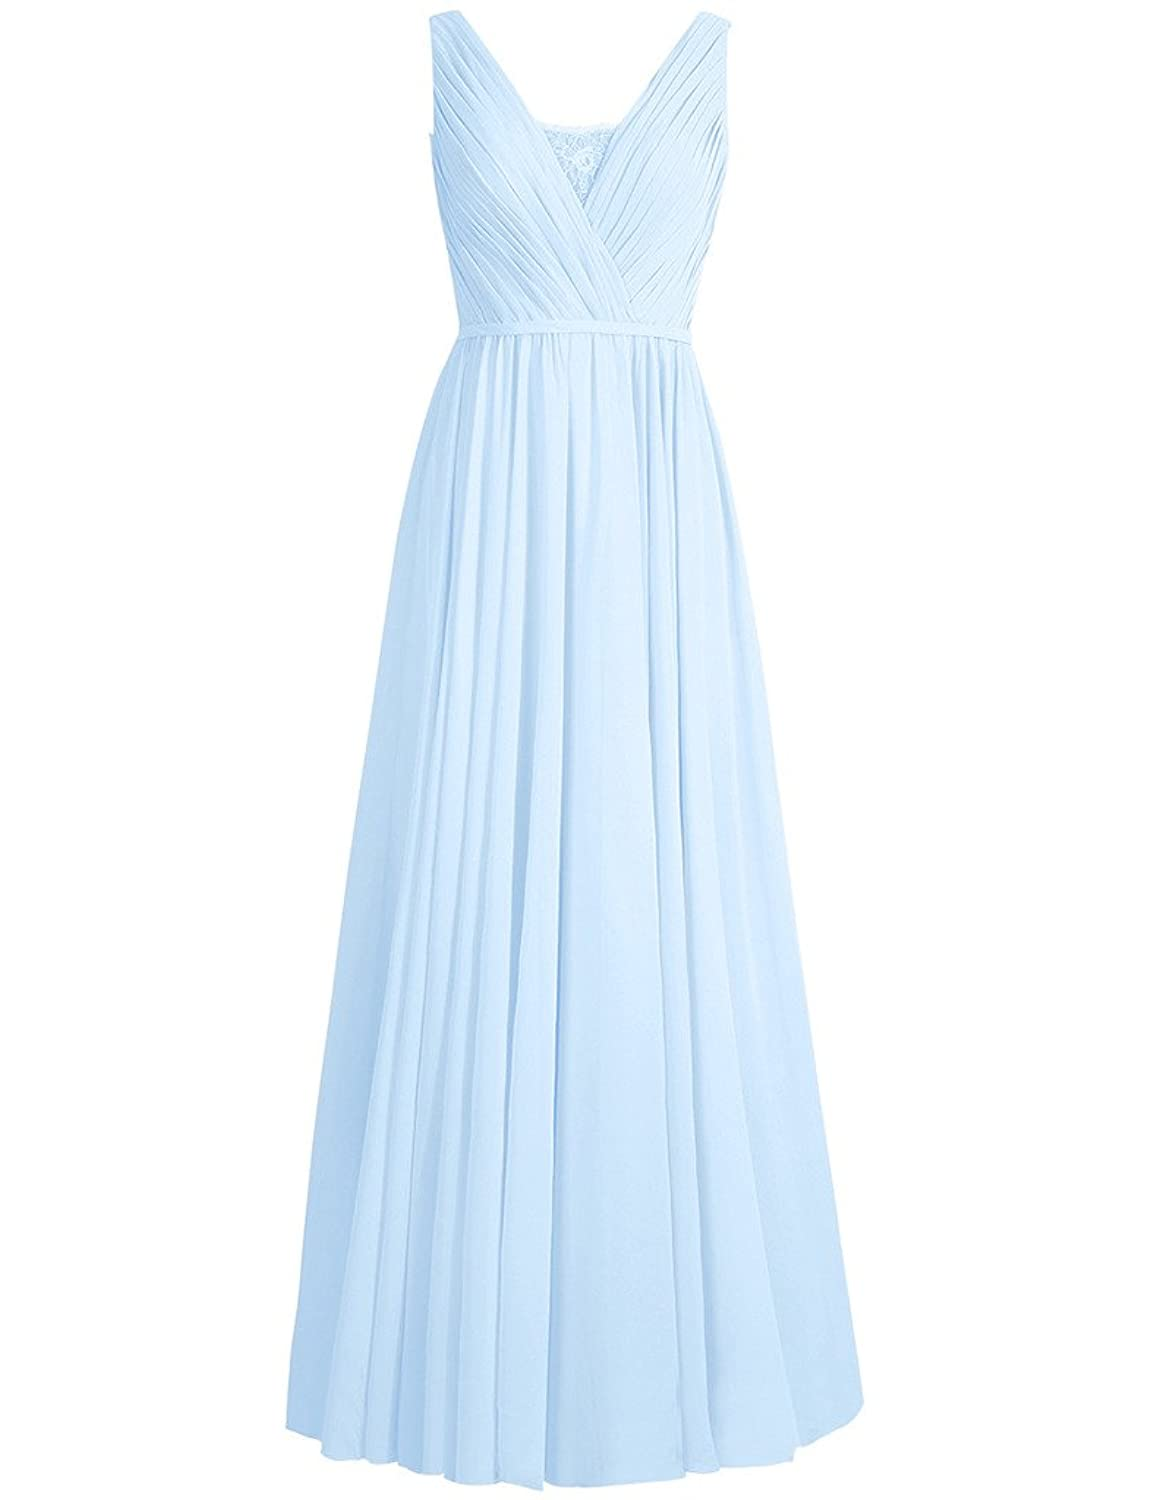 HUINI Lace Sheer V-Neck Long Chiffon Bridesmaid Prom Dresses Party Formal Gowns UK24W